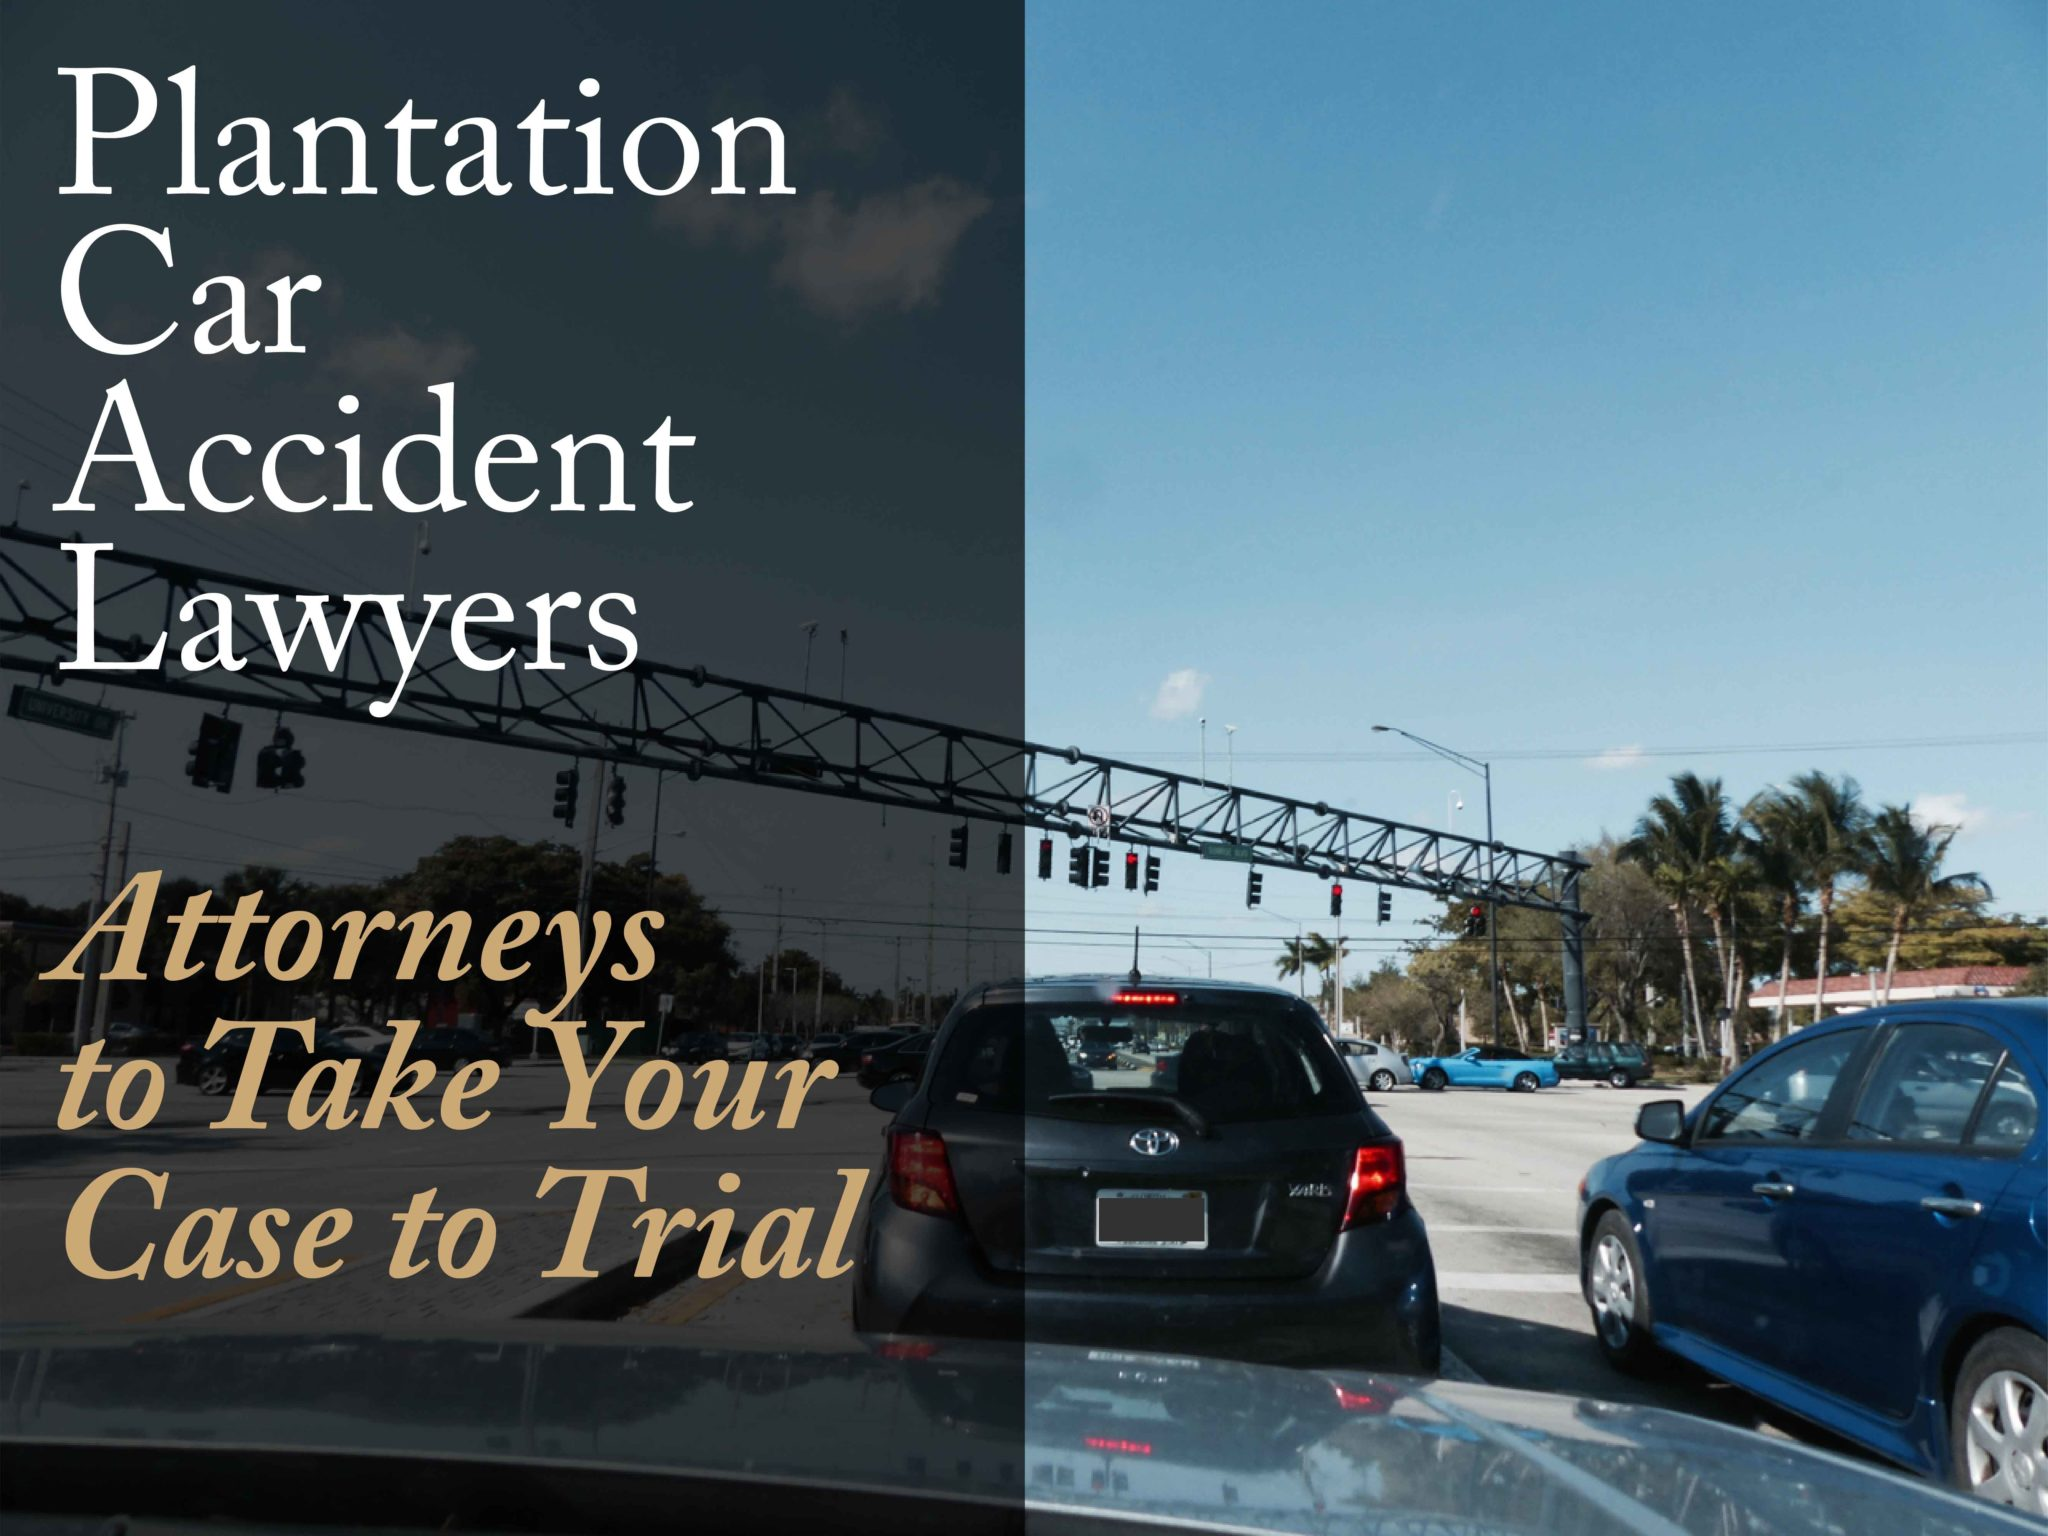 Plantation Car Accident Lawyers - Attorneys to Take Your Case to Trial Intersection of Pine Island and Sunrise in Plantation Florida